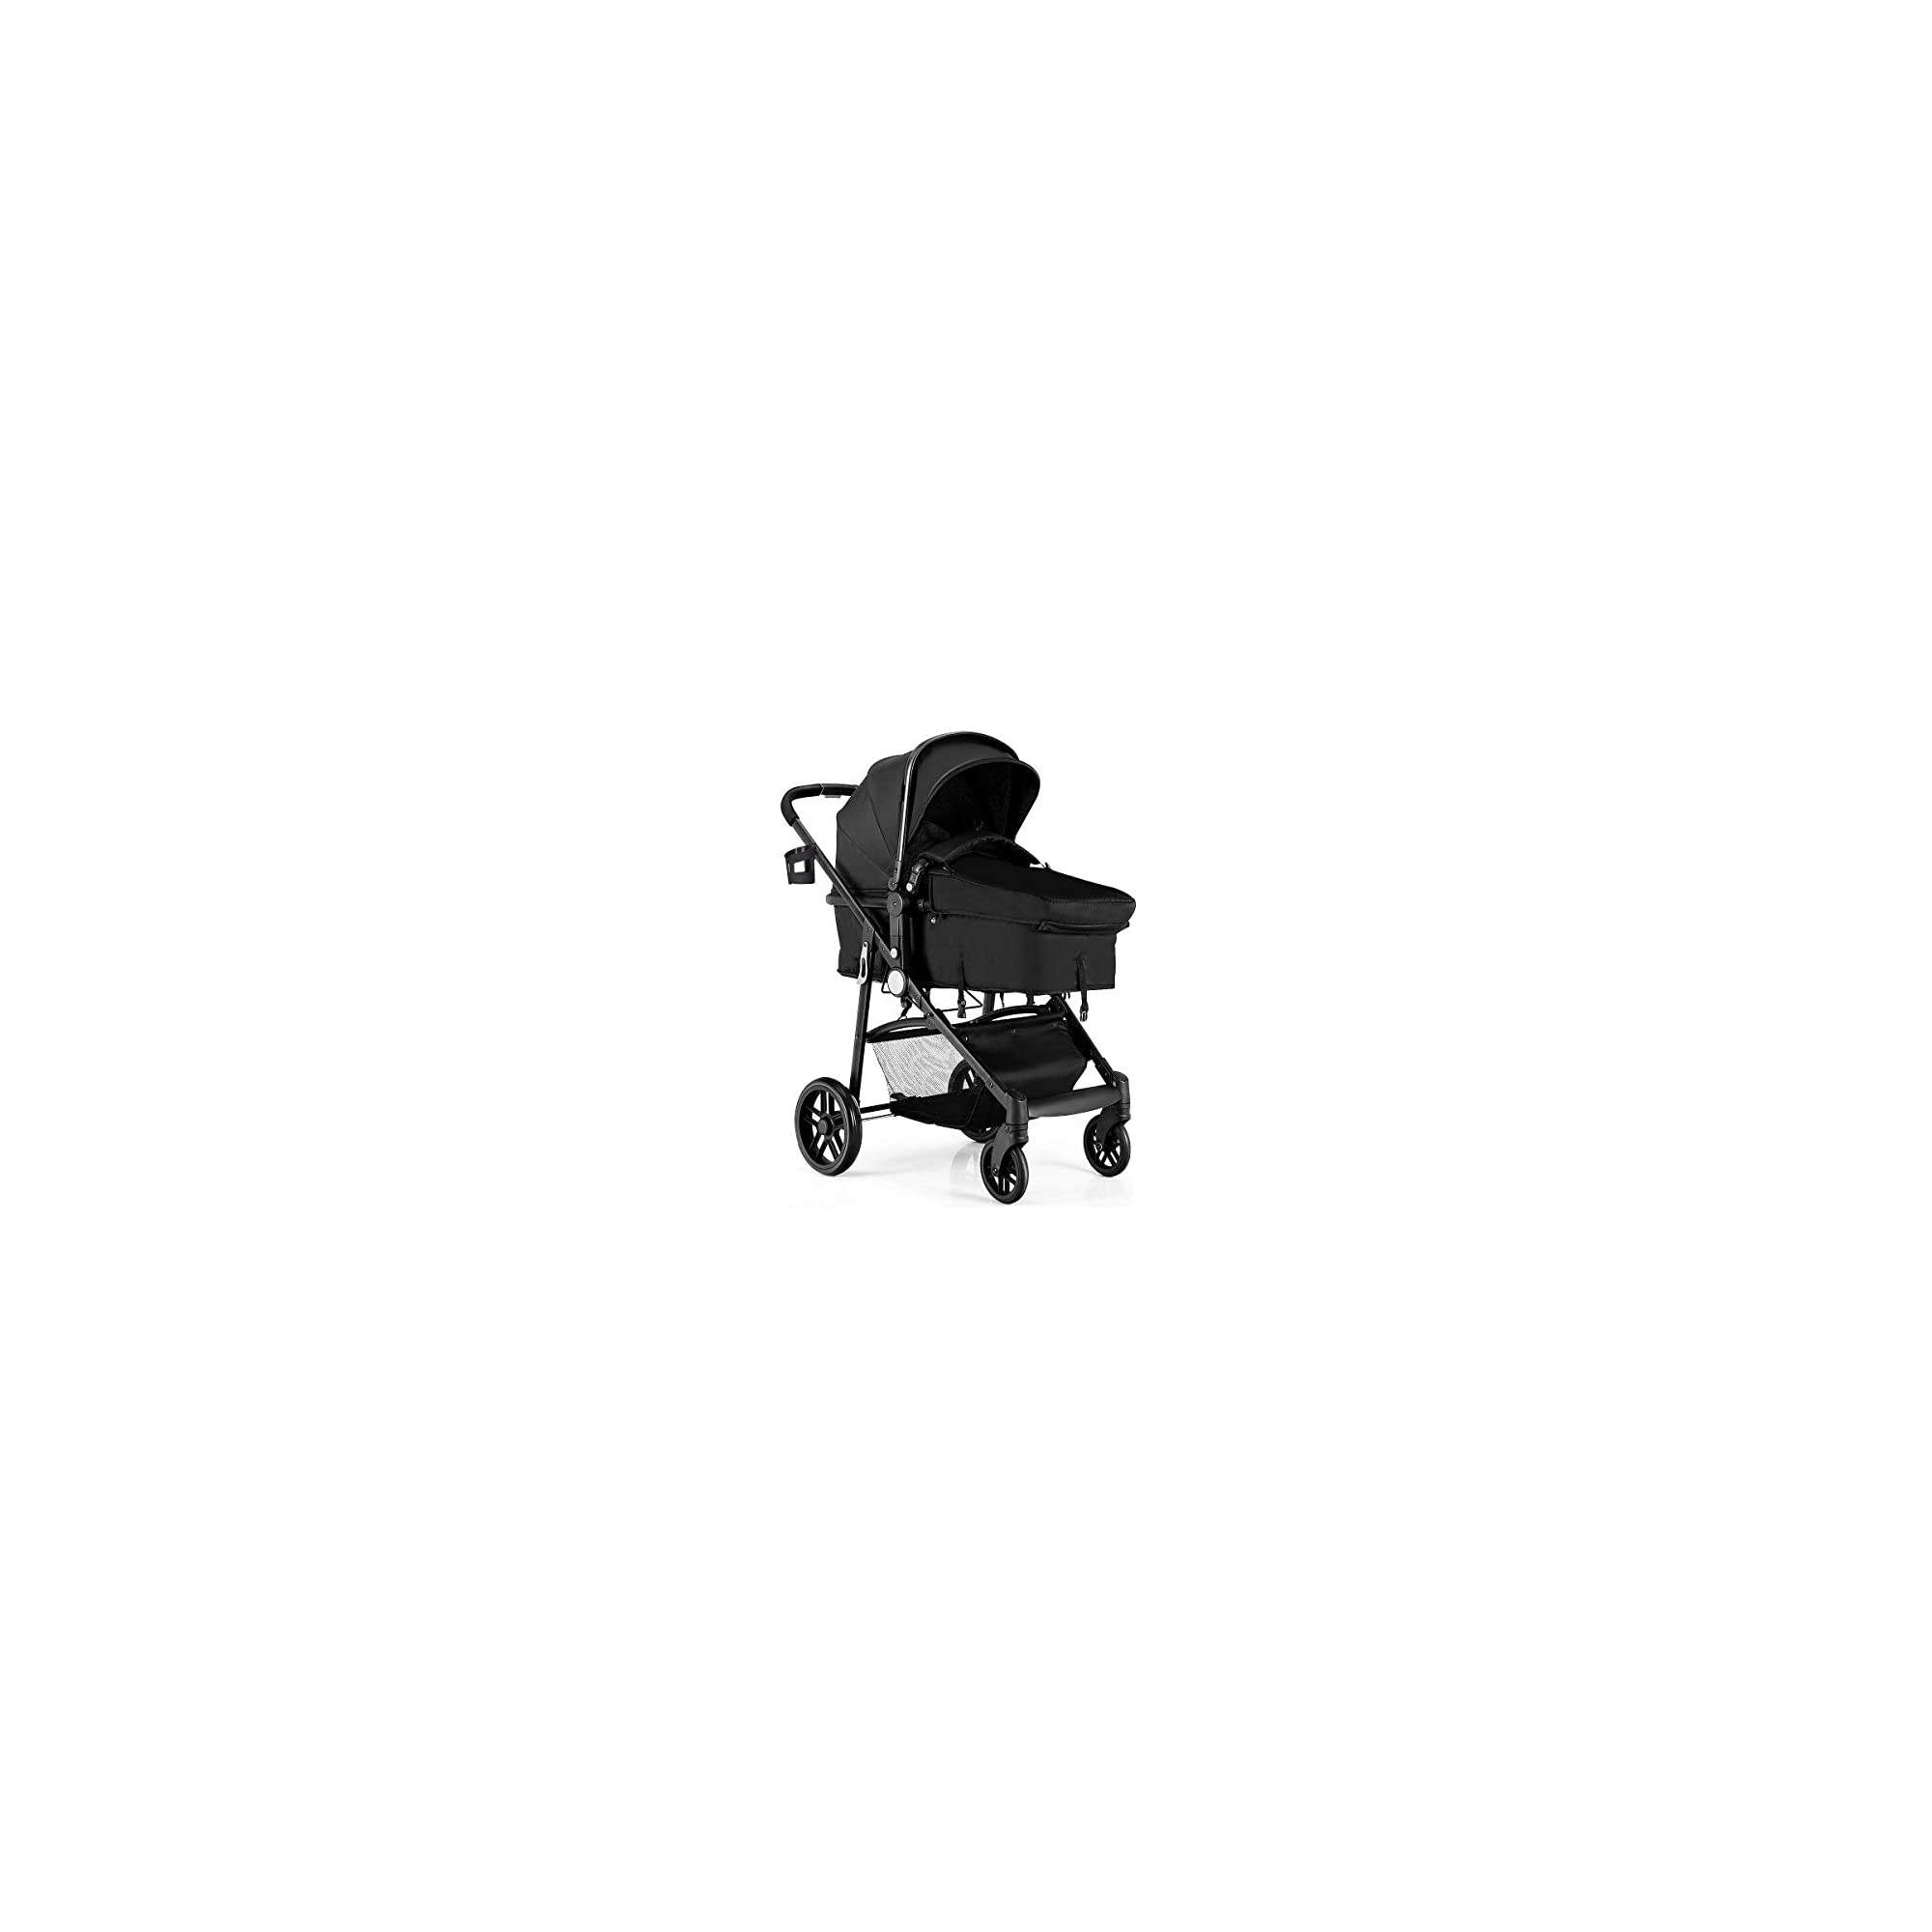 BABY JOY Baby Stroller, 2 in 1 Convertible Carriage Bassinet to Stroller, Pushchair with Foot Cover, Cup Holder, Large Storage Space, Wheels Suspension, 5-Point Harness (Champagne)